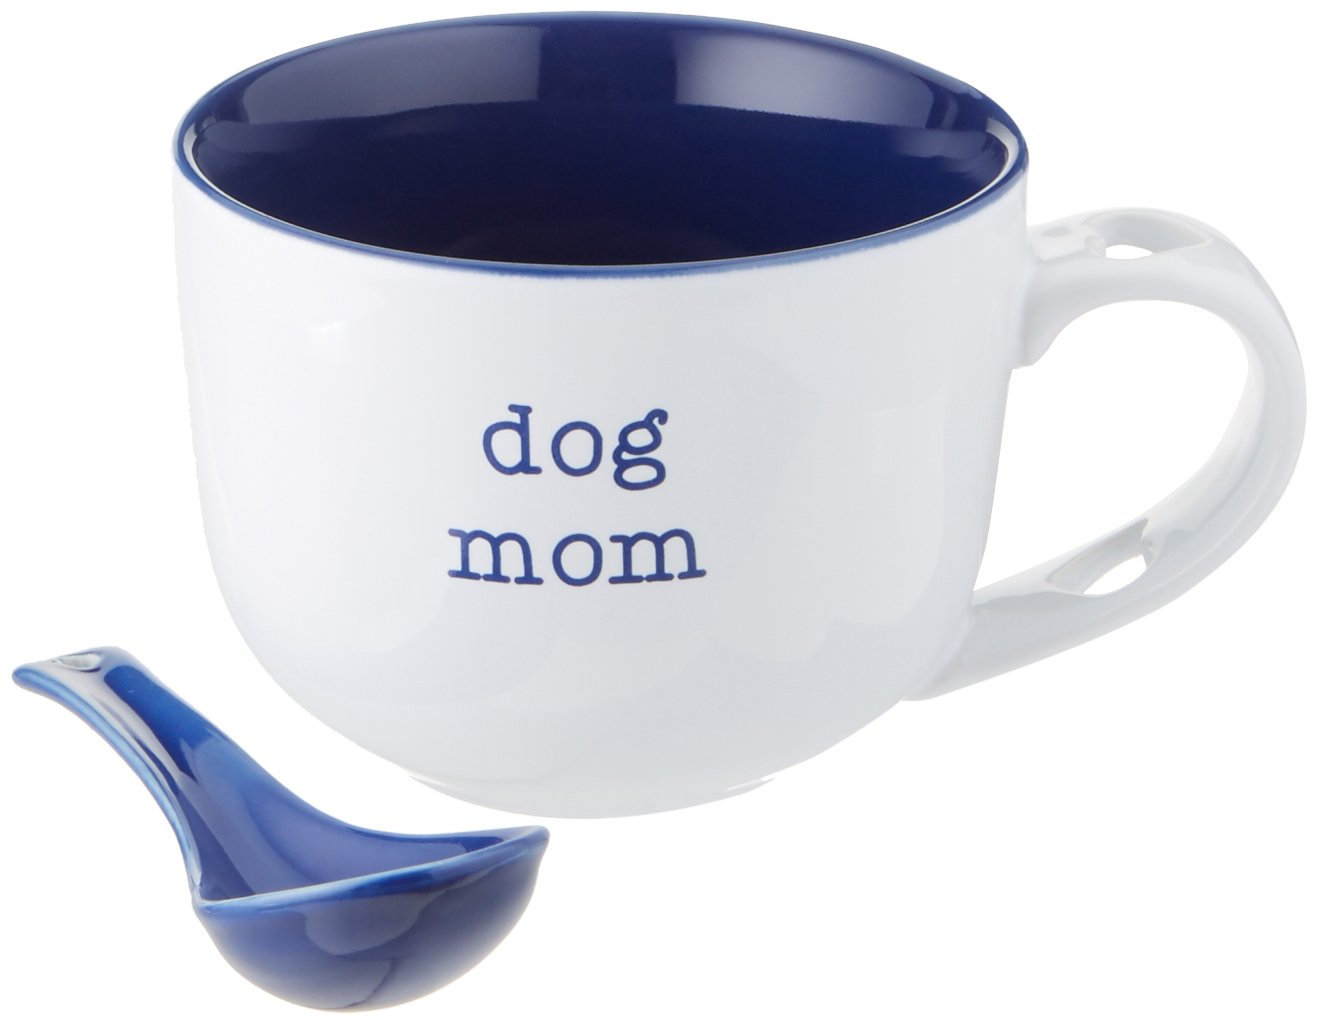 Pavilion Gift Company 14120 Dog Mom Soup Bowl with Spoon, 16-Ounce, Mom Love